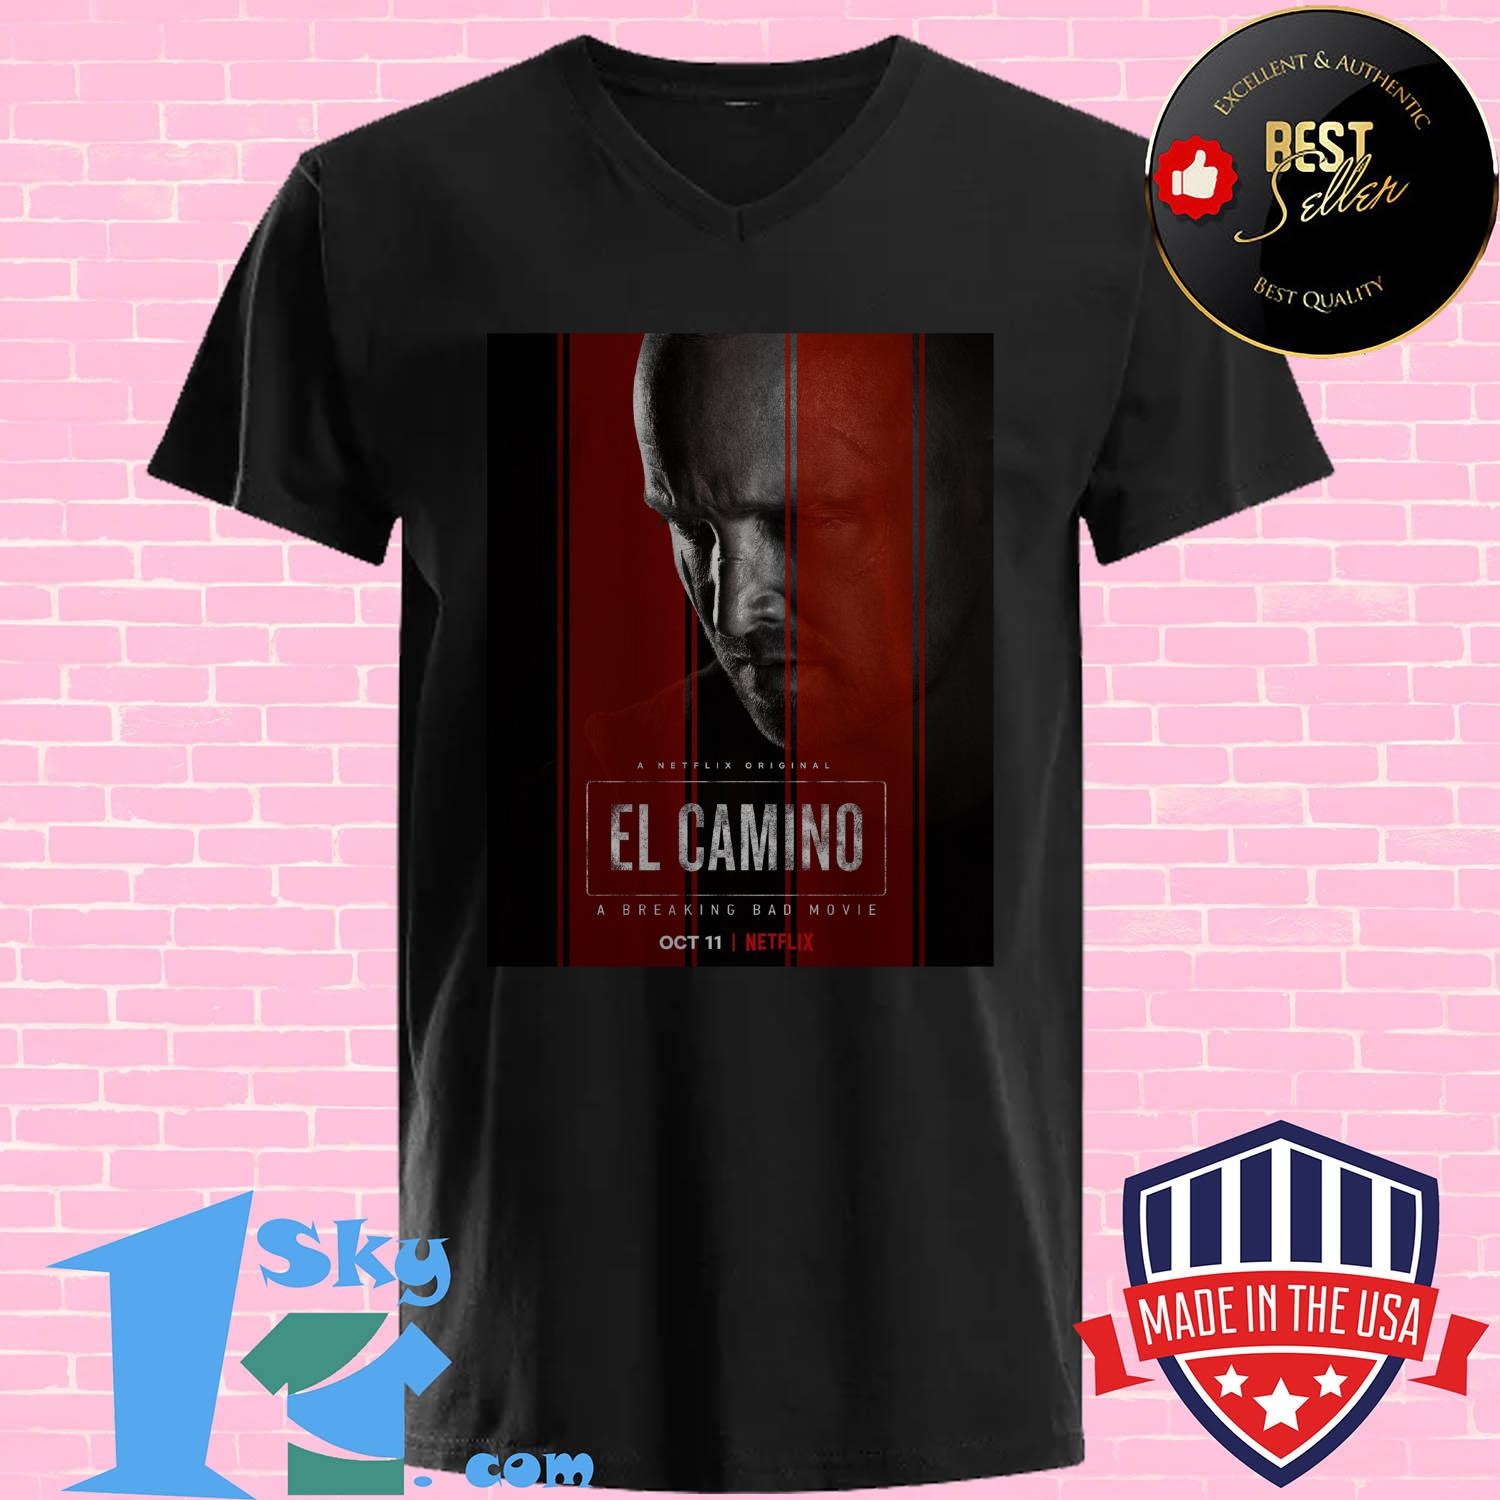 el camino a breaking bad movie 11 october 2019 v neck - EL Camino a Breaking Bad movie 11 October 2019 shirt